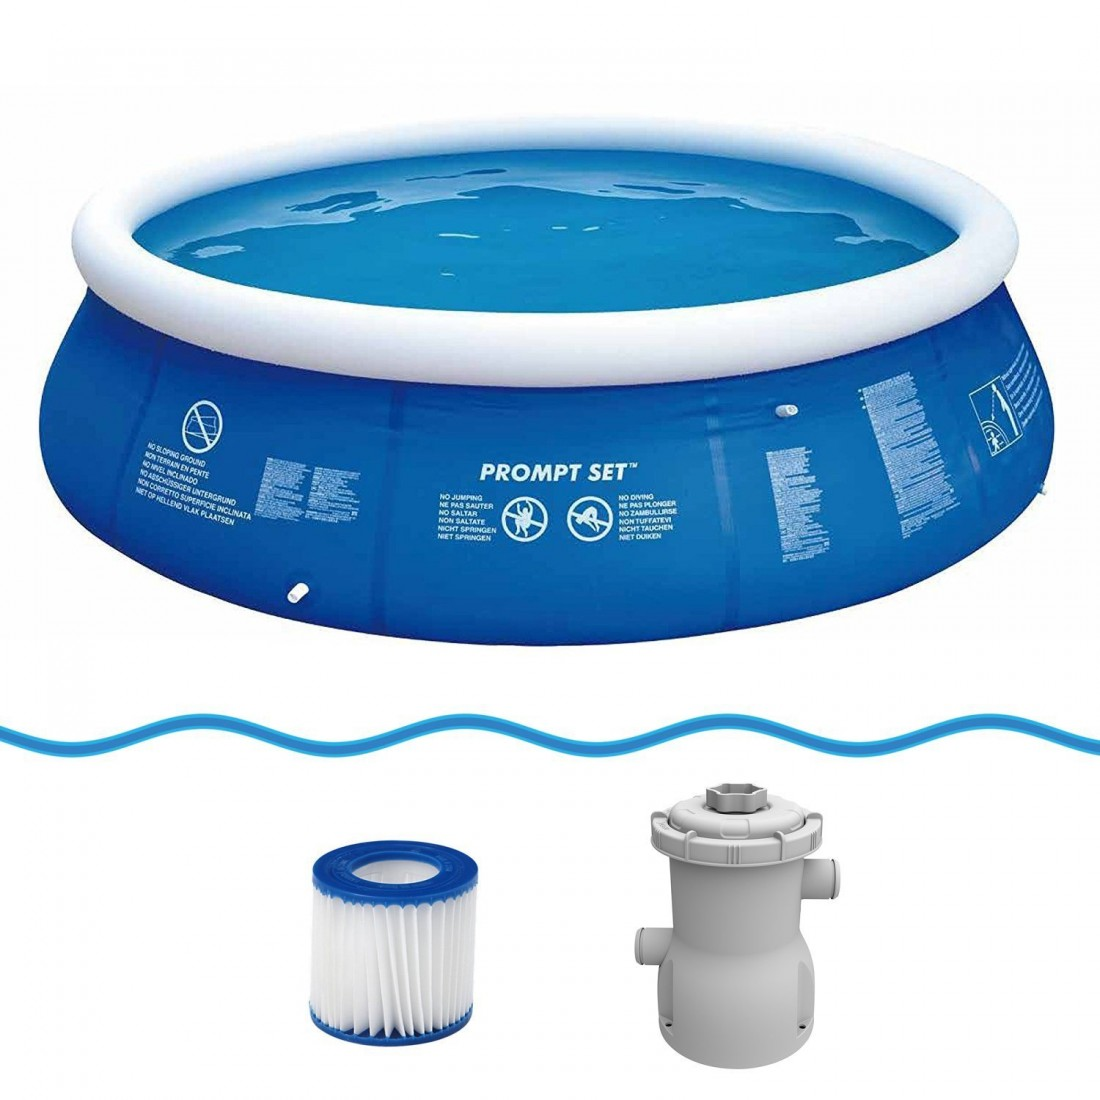 Buy jilong prompt set blue 360 set quick up pool set with filter pump 360x84cm from jilong at - Quick up pool zubehor ...